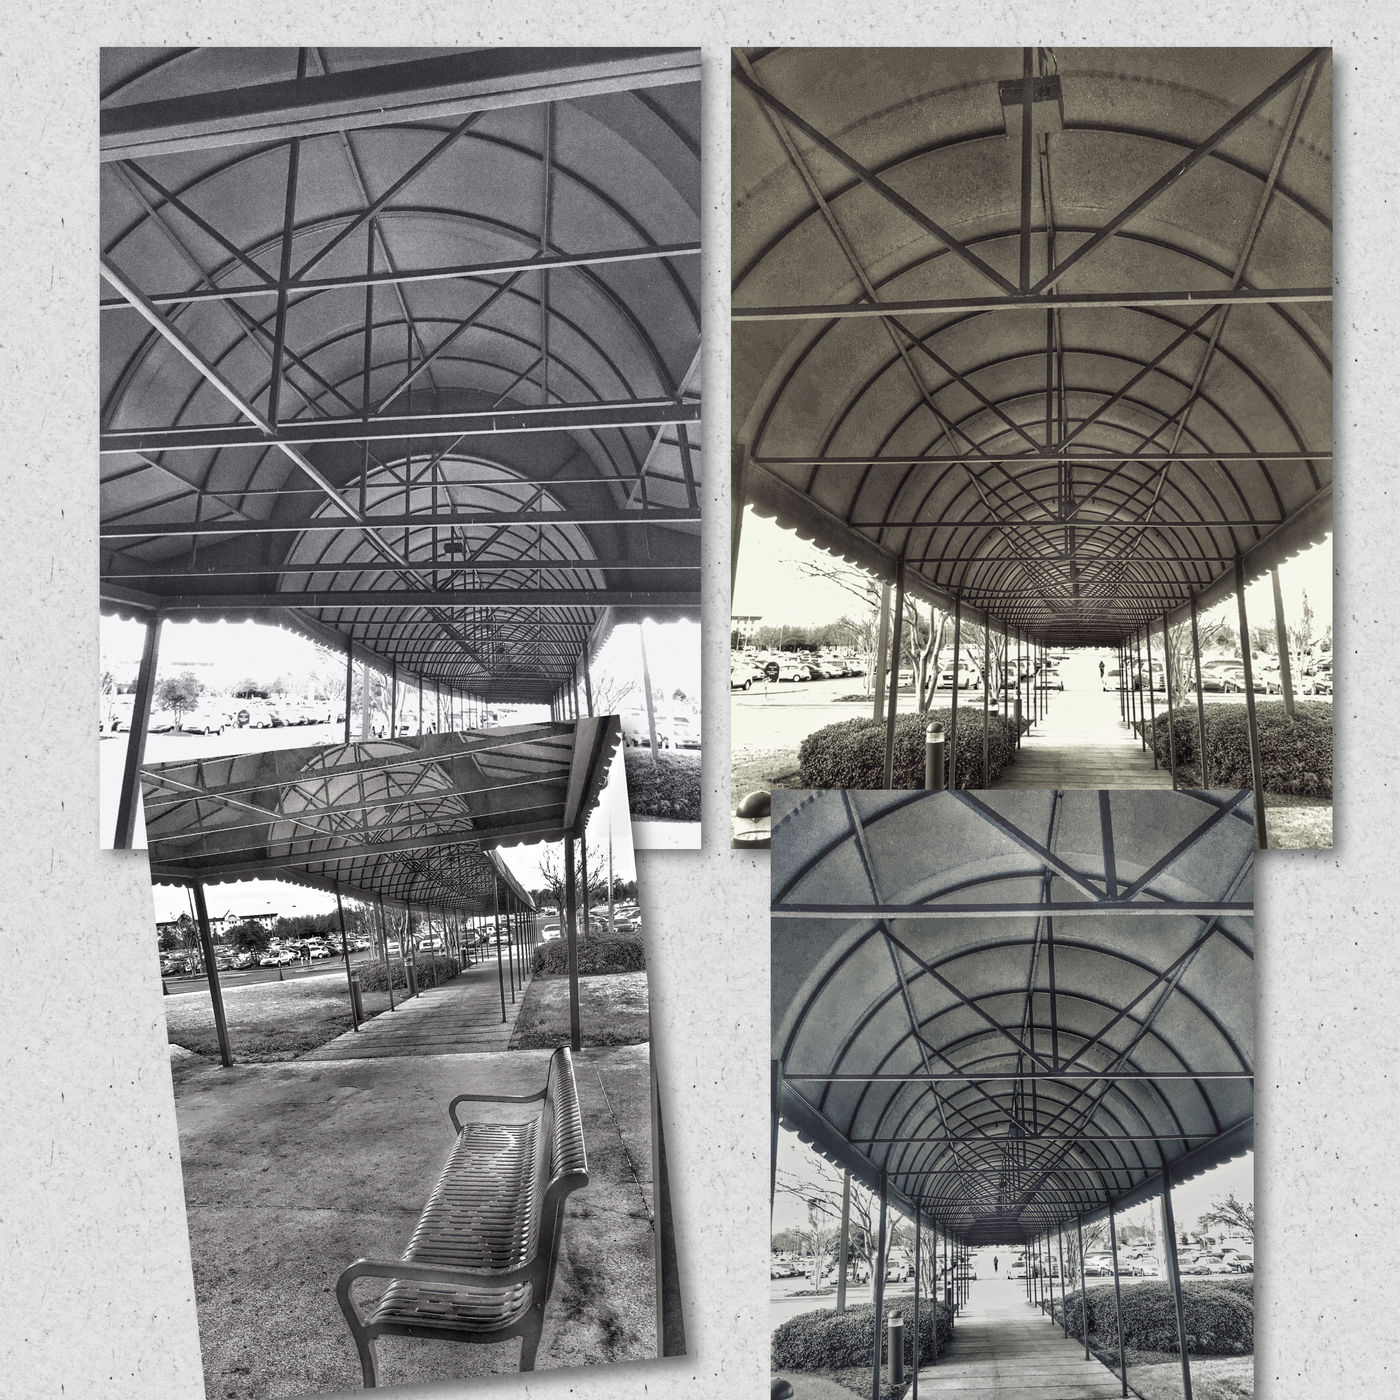 Collage: Beneath an Awning. Hollywoodcasino Monochrome Blackandwhite Robinsonvillems Monochromatic Tunicams